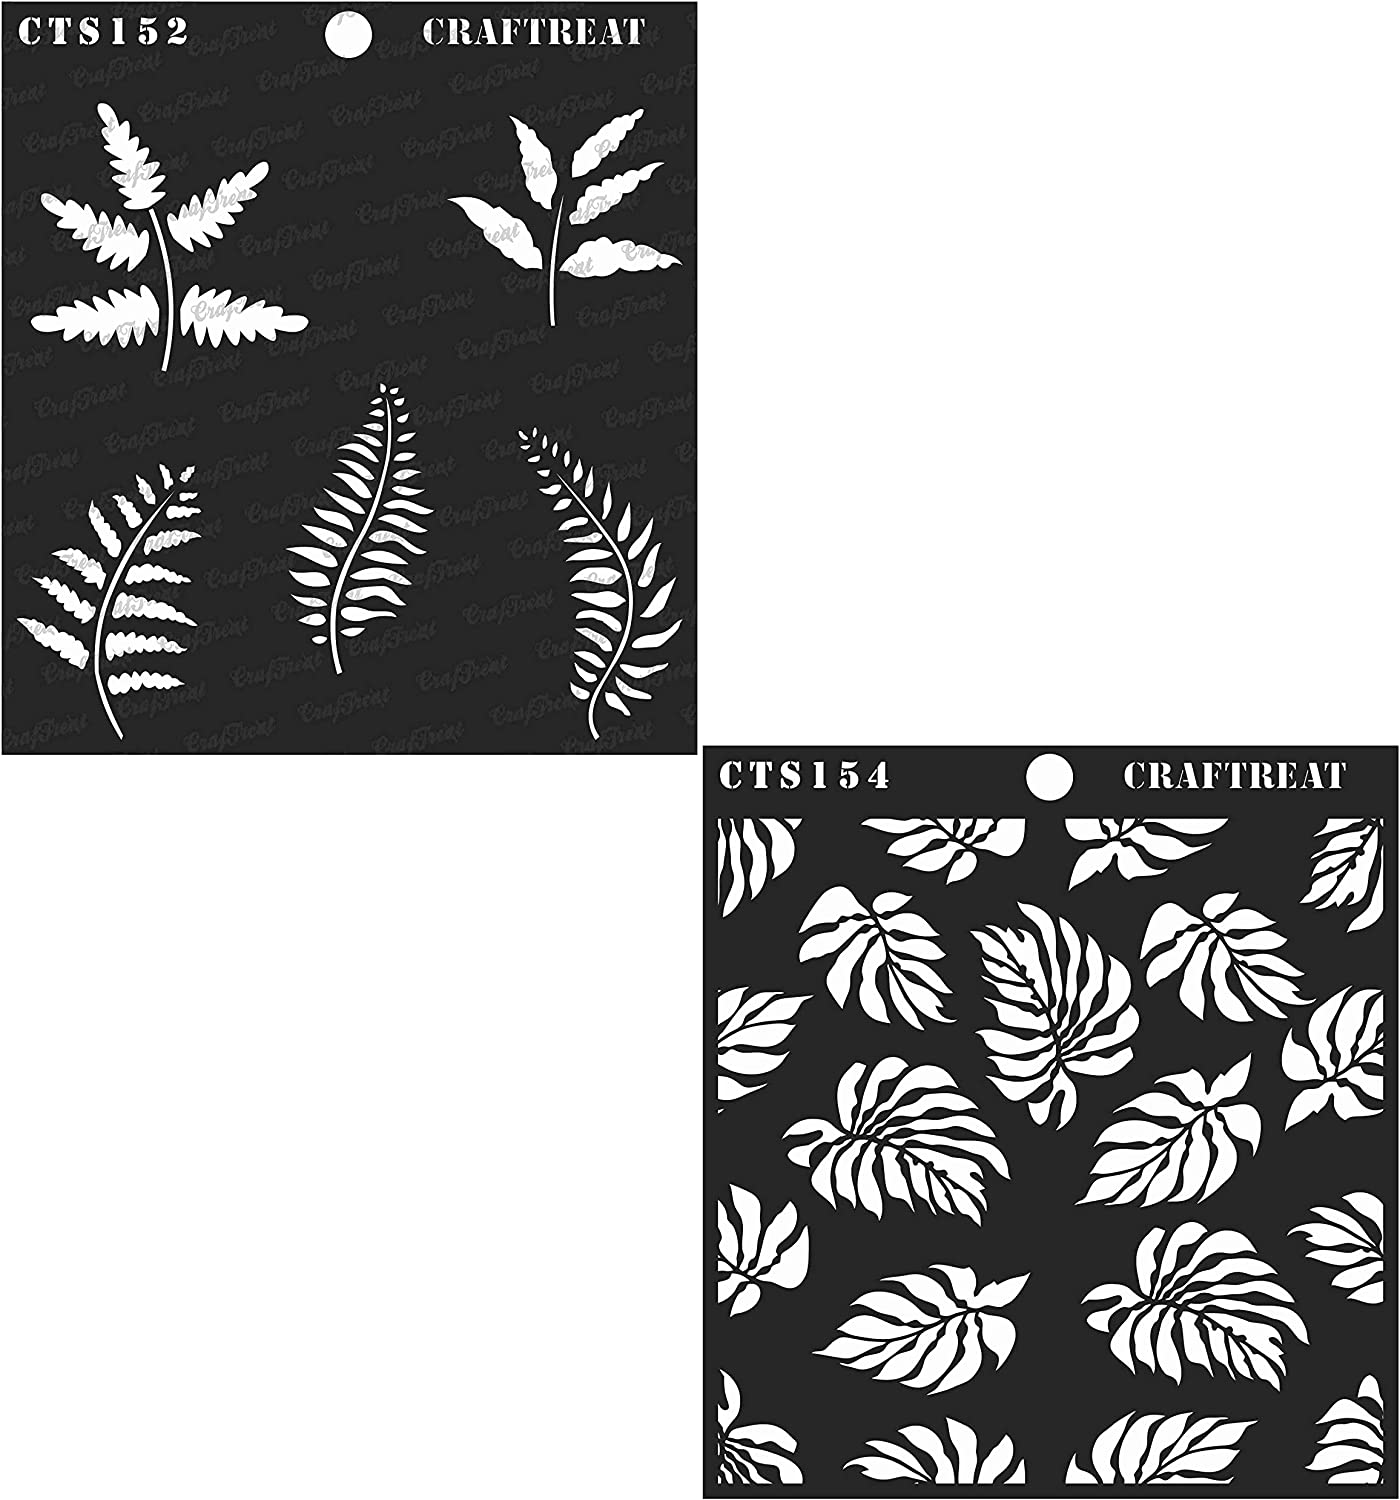 Floor Fabric Foliage1 /& Bamboo Forest Wall DIY Albums Wood 6X6 Crafting CrafTreat Stencil Tile 2 pcs | Reusable Painting Template for Home Decor Scrapbook and Printing on Paper